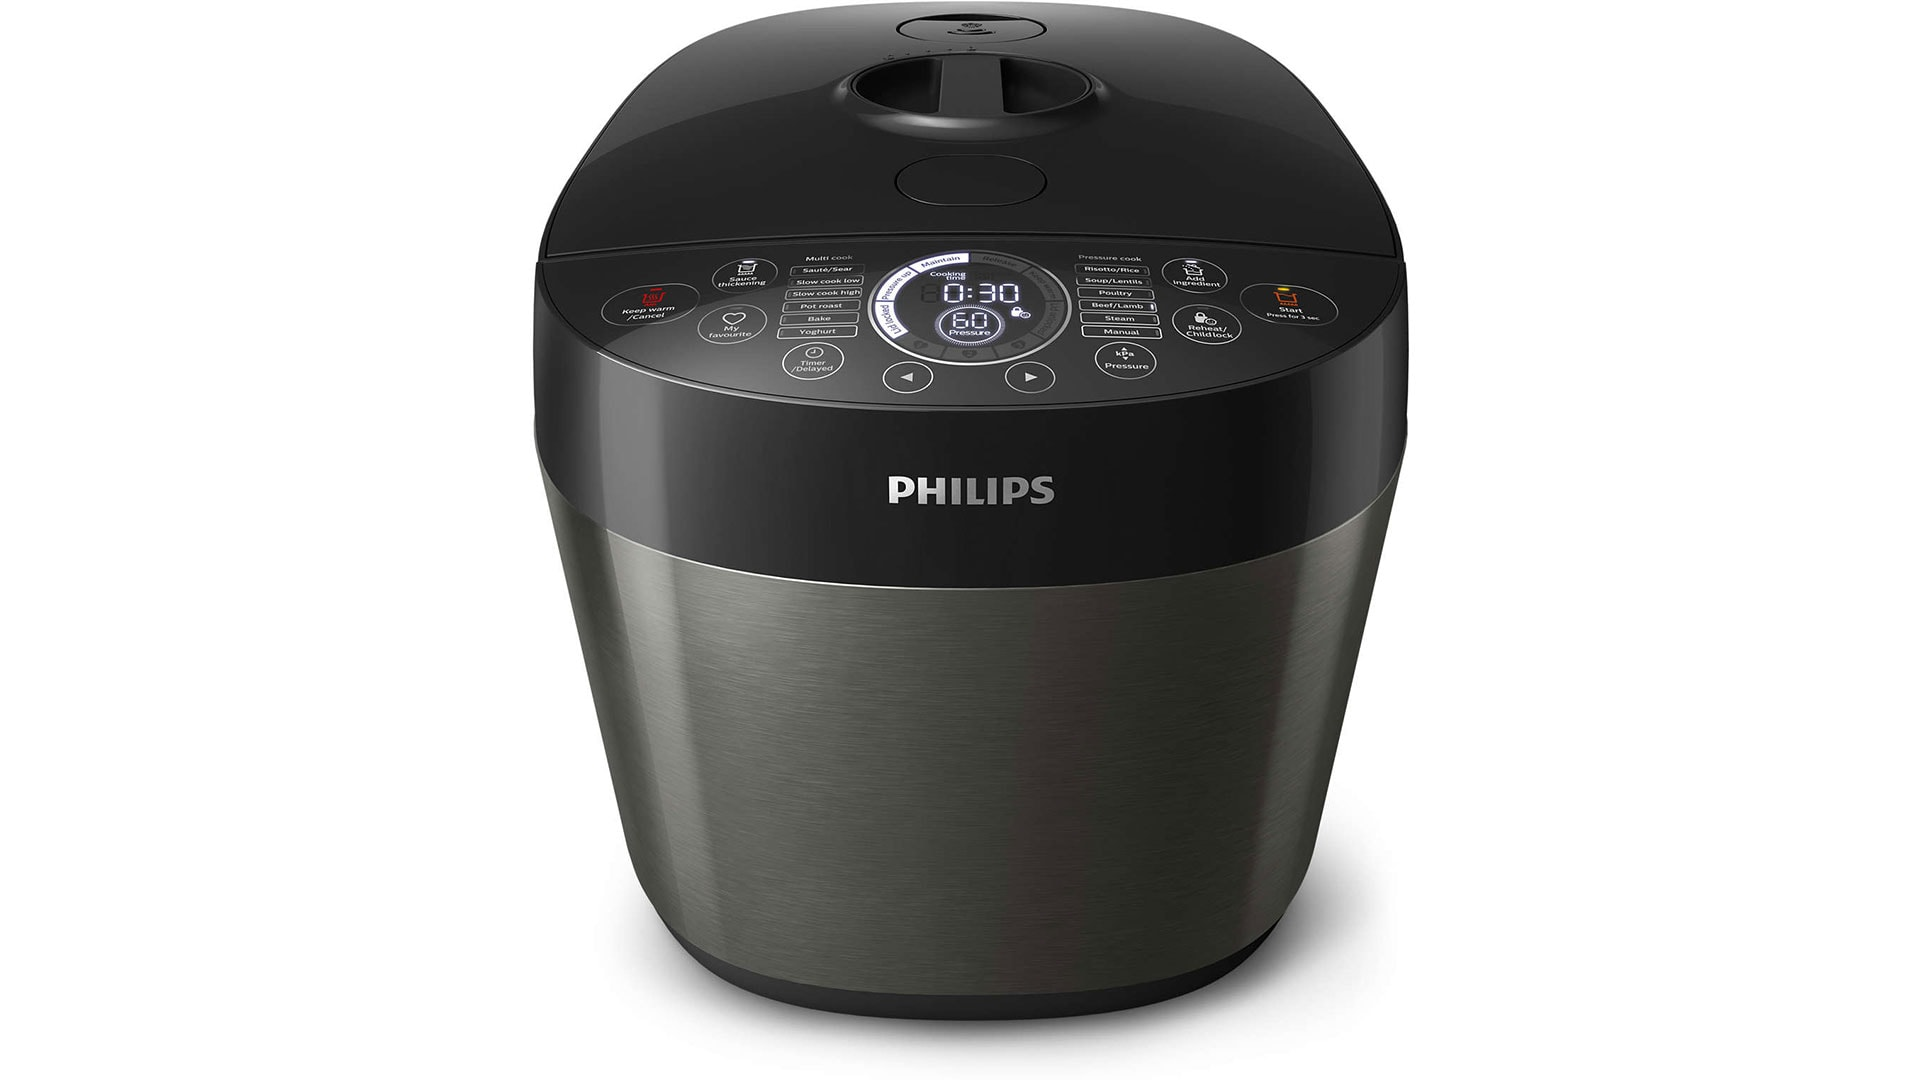 Download image (.jpg) Philips premium all in one multicooker (opens in a new window)